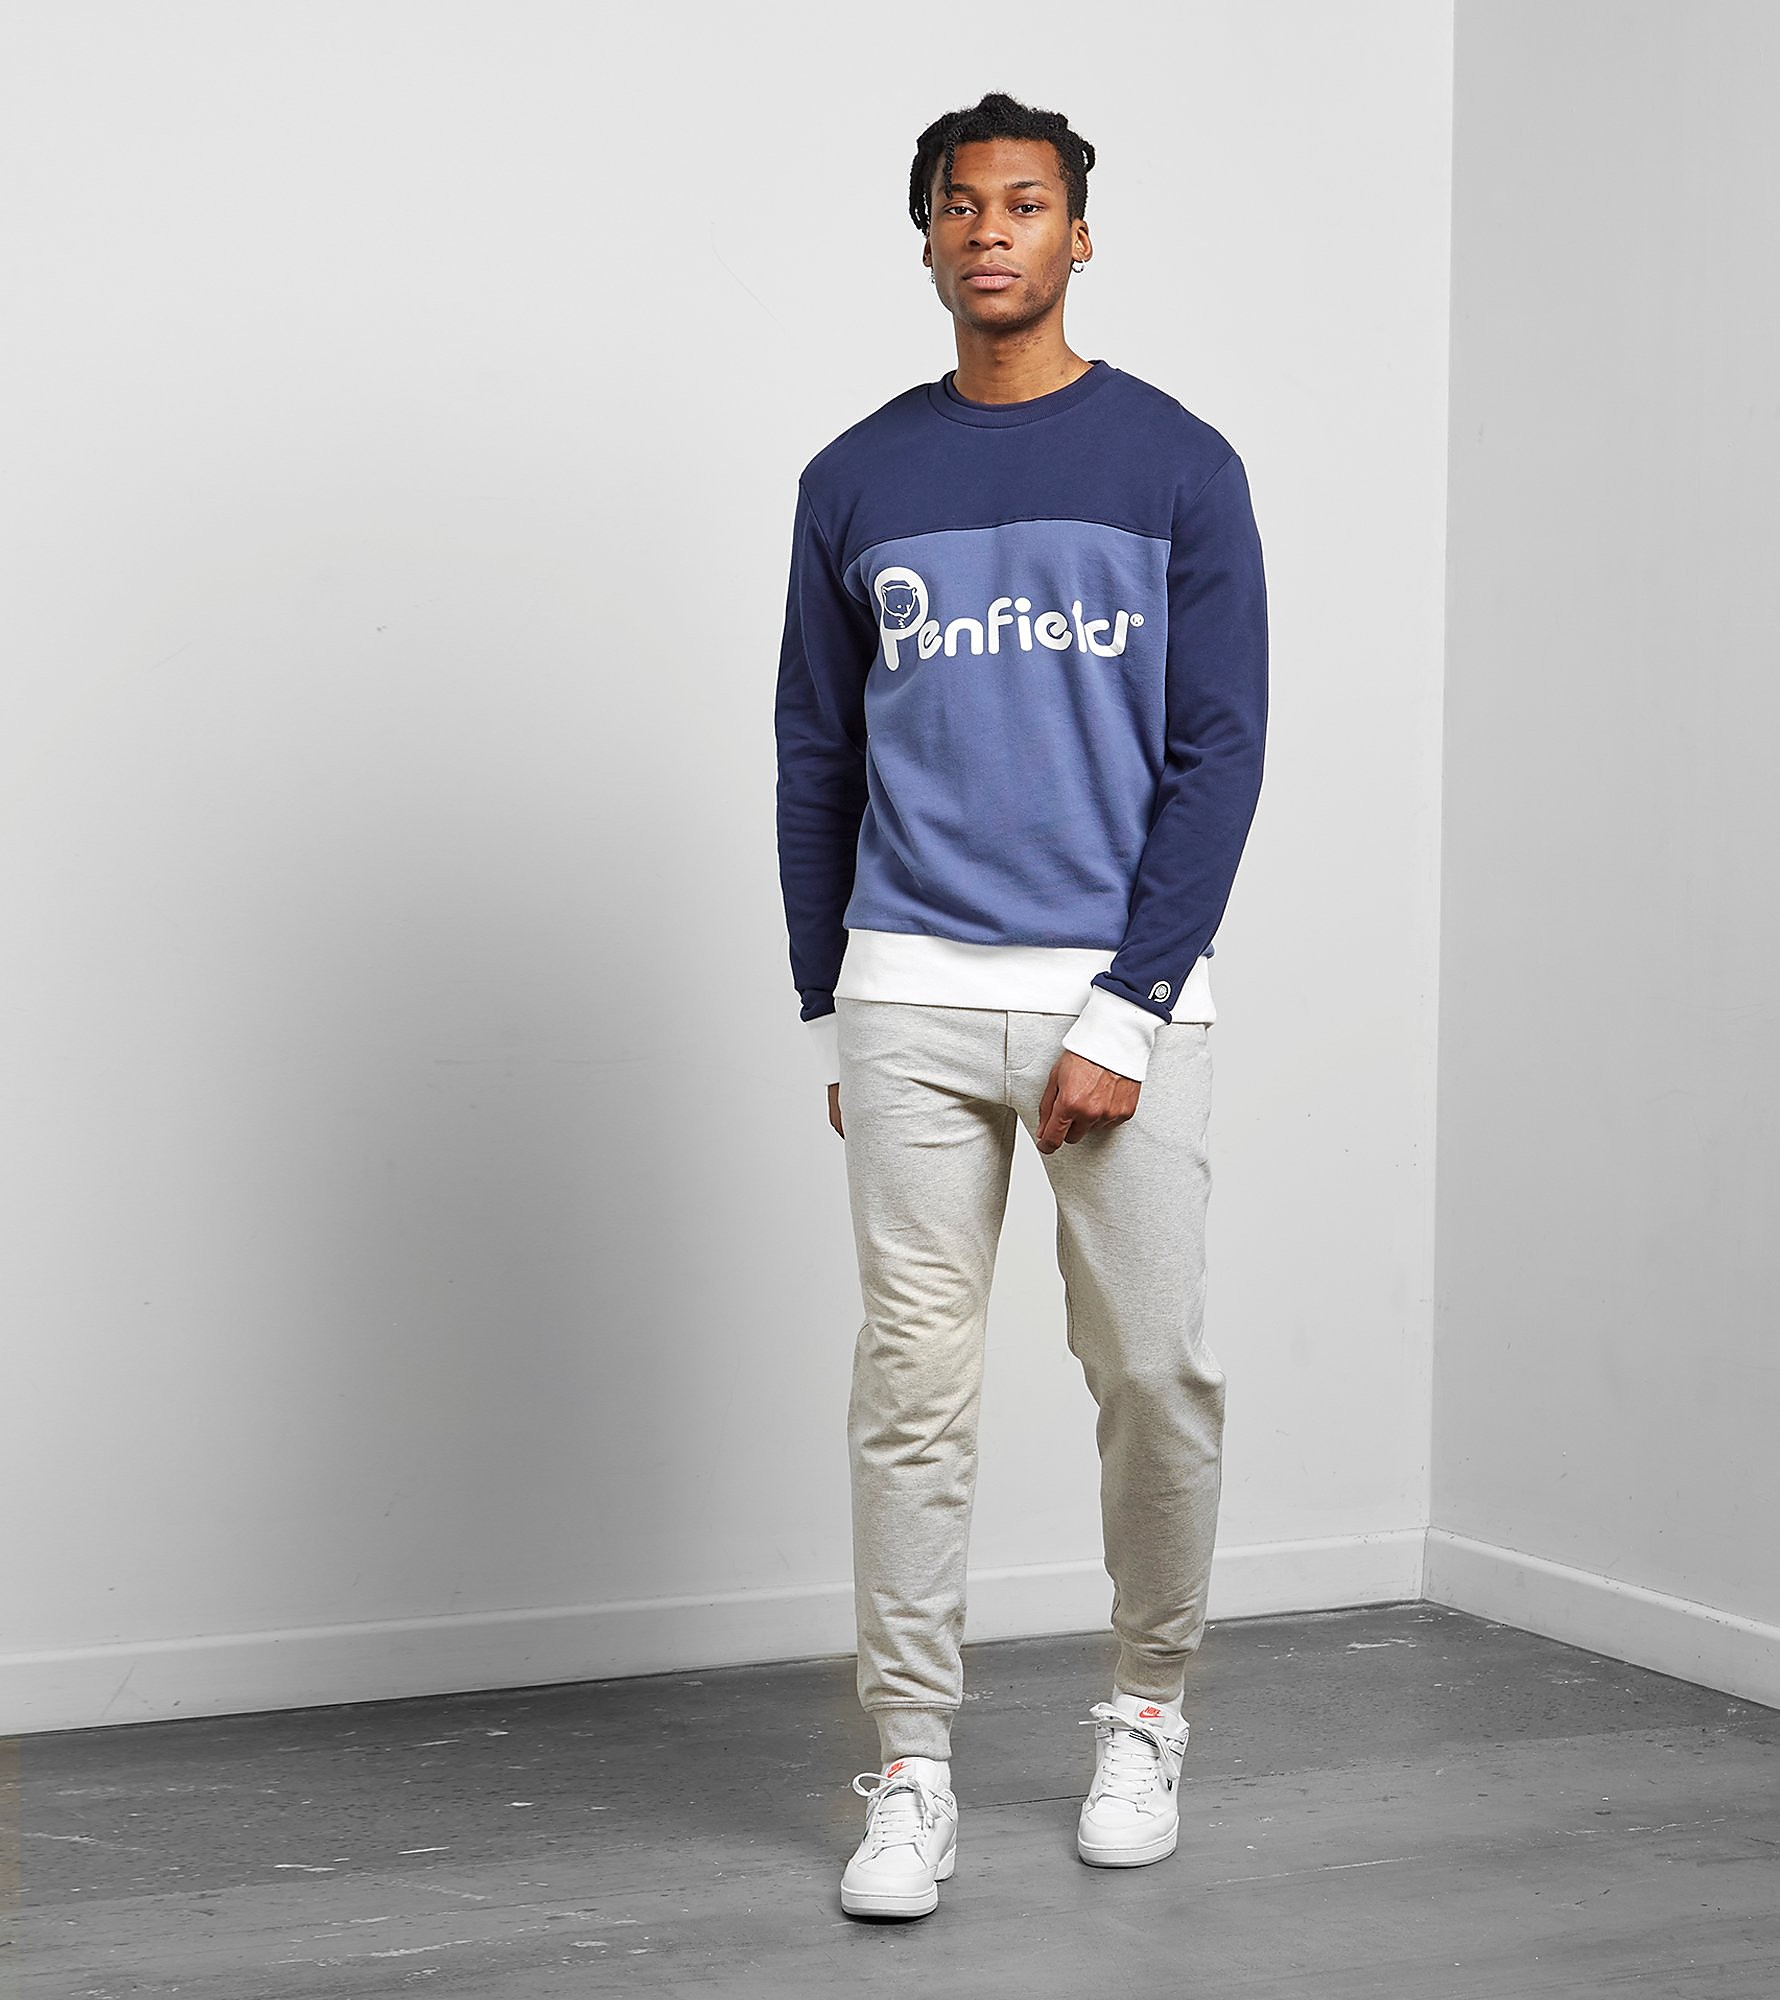 Penfield Orso Sweatshirt